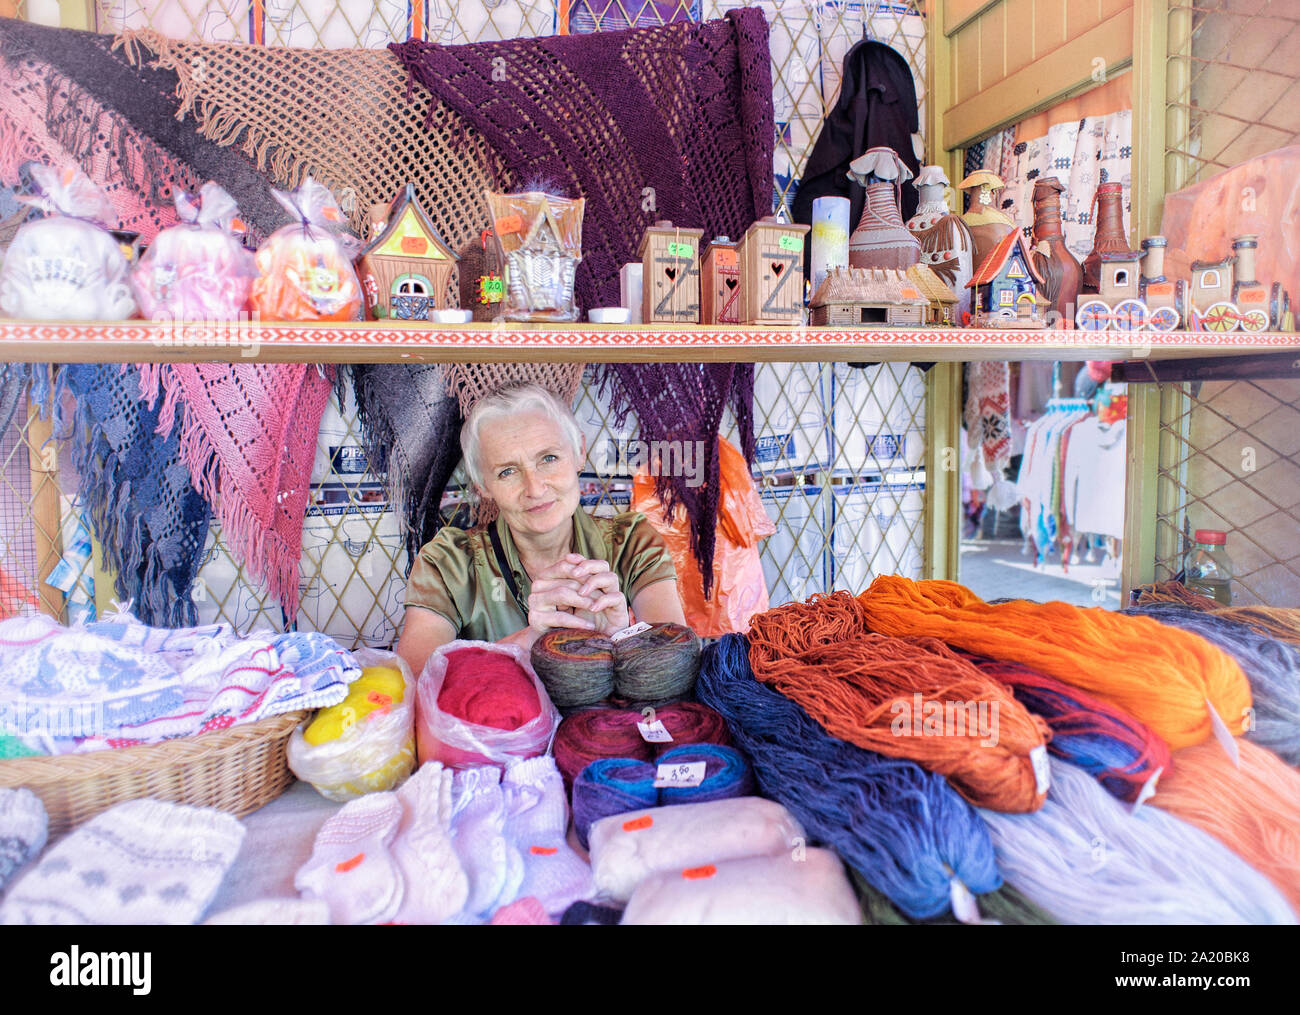 environmental-portrait-of-beautiful-shopkeeper-in-the-marketplace-tallinn-estonia-with-souvenirs-wool-and-woolen-goods-for-sale-european-travel-and-2A20BK8.jpg